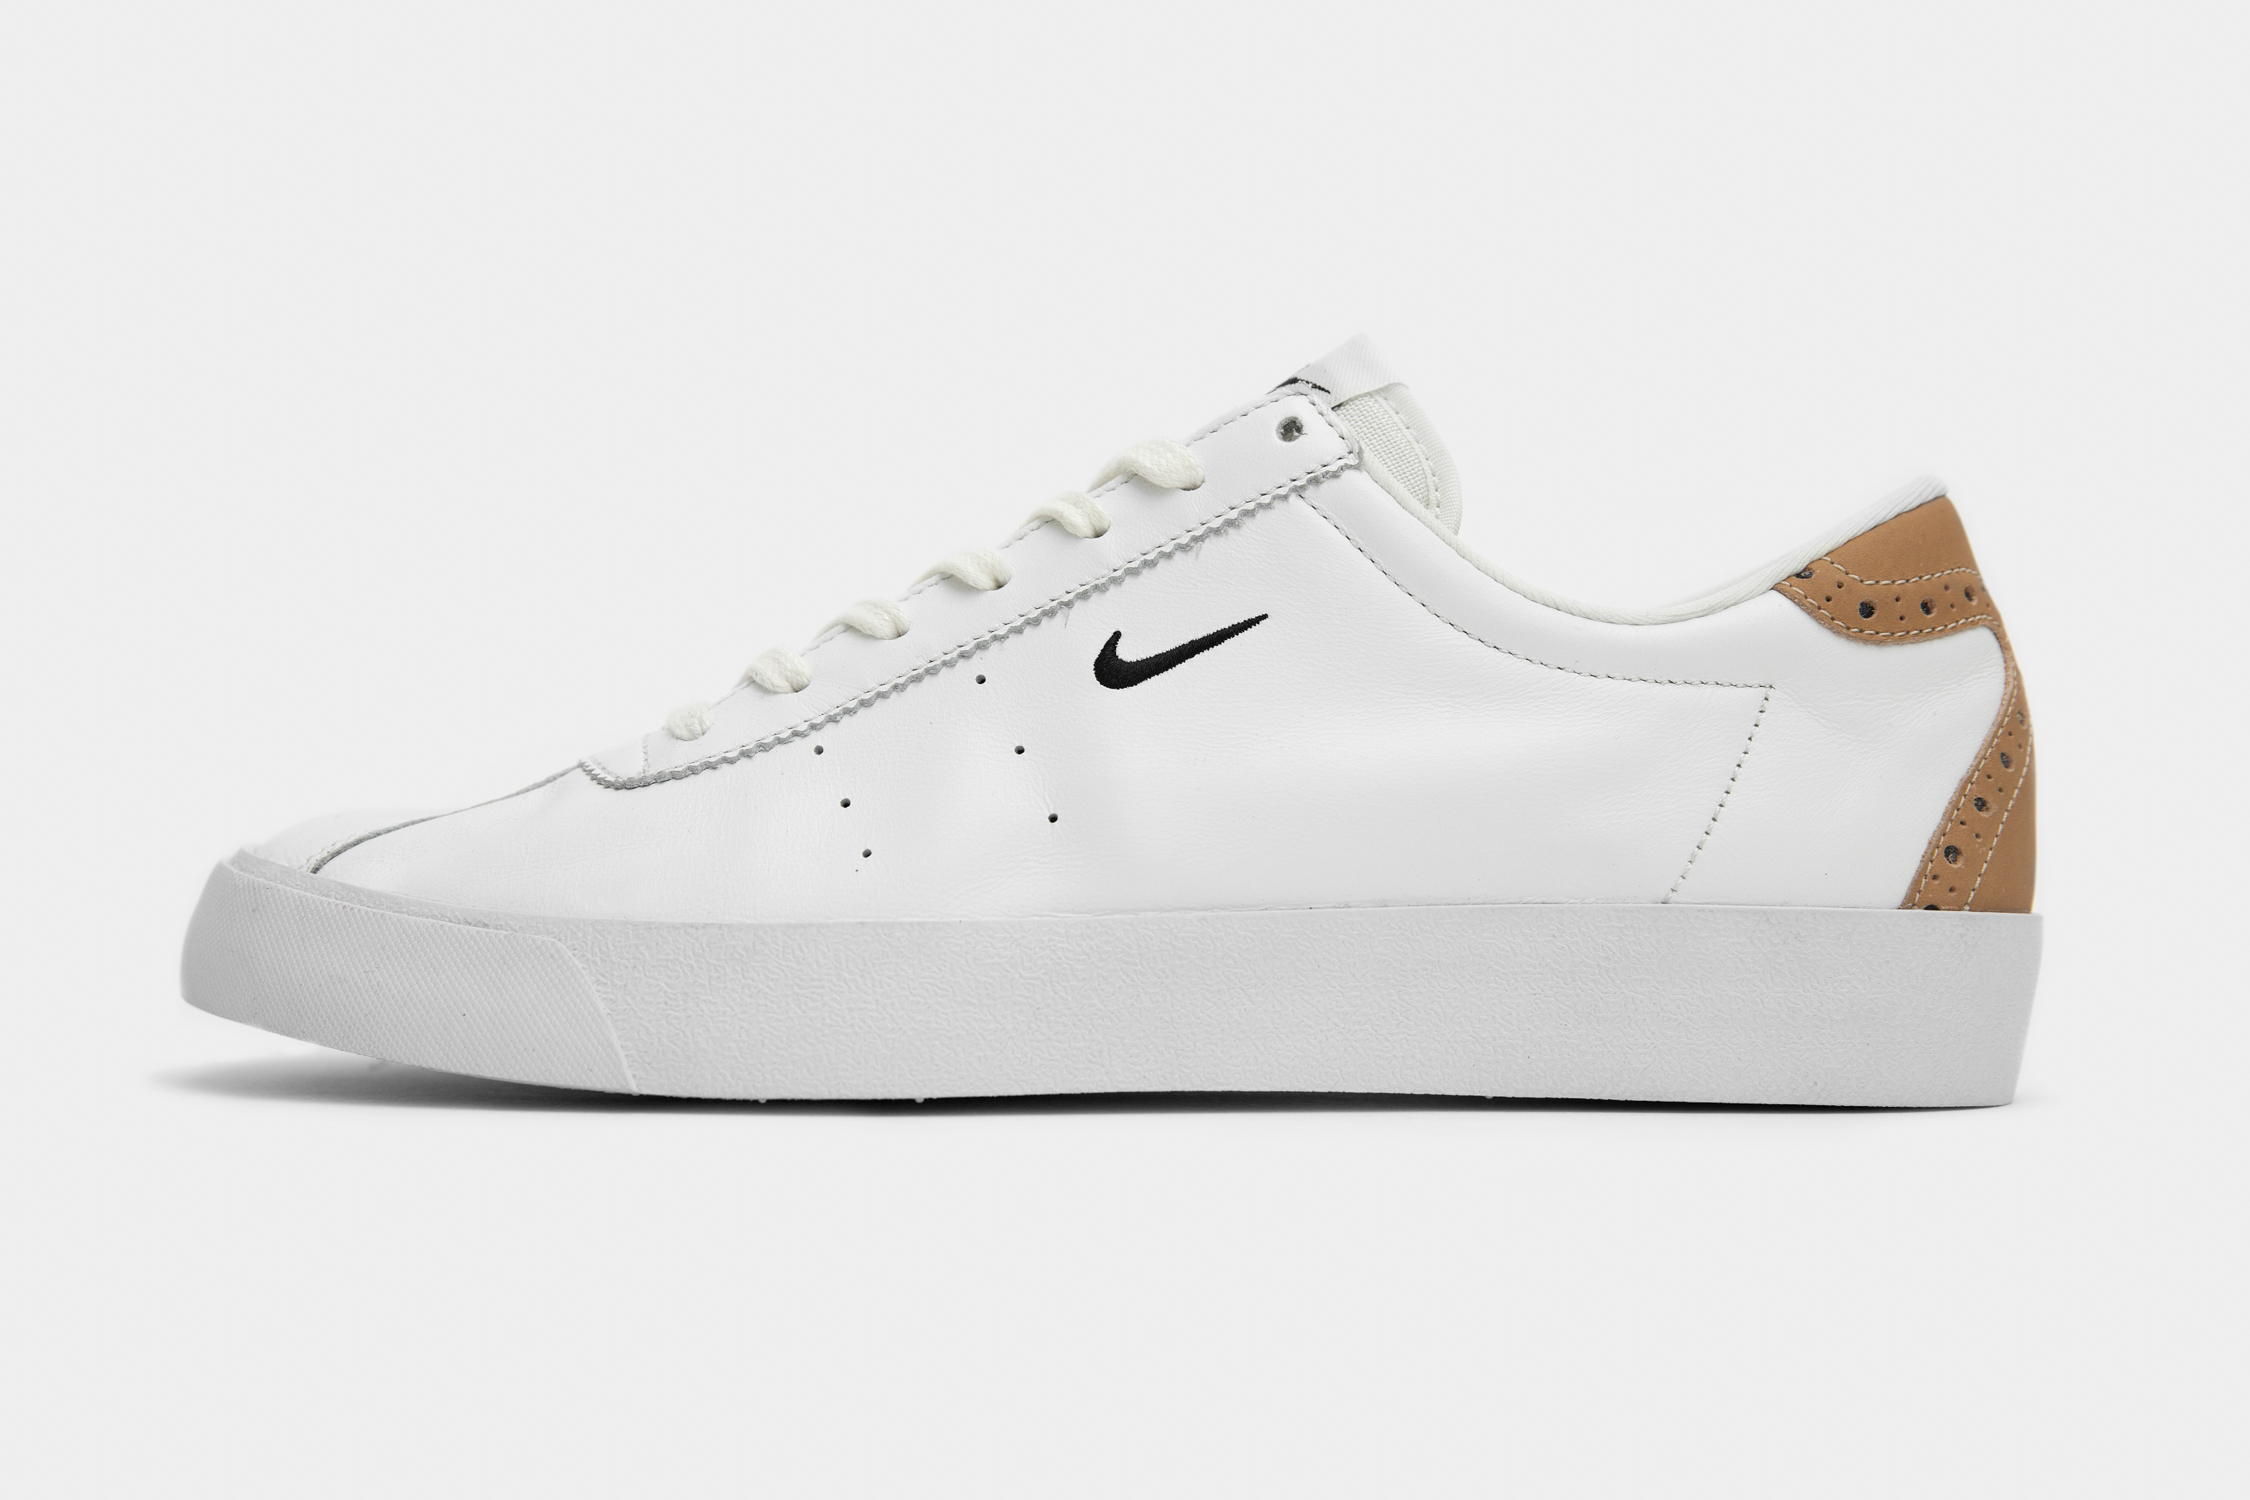 nike_match_Classic_Leather_premium_size-2